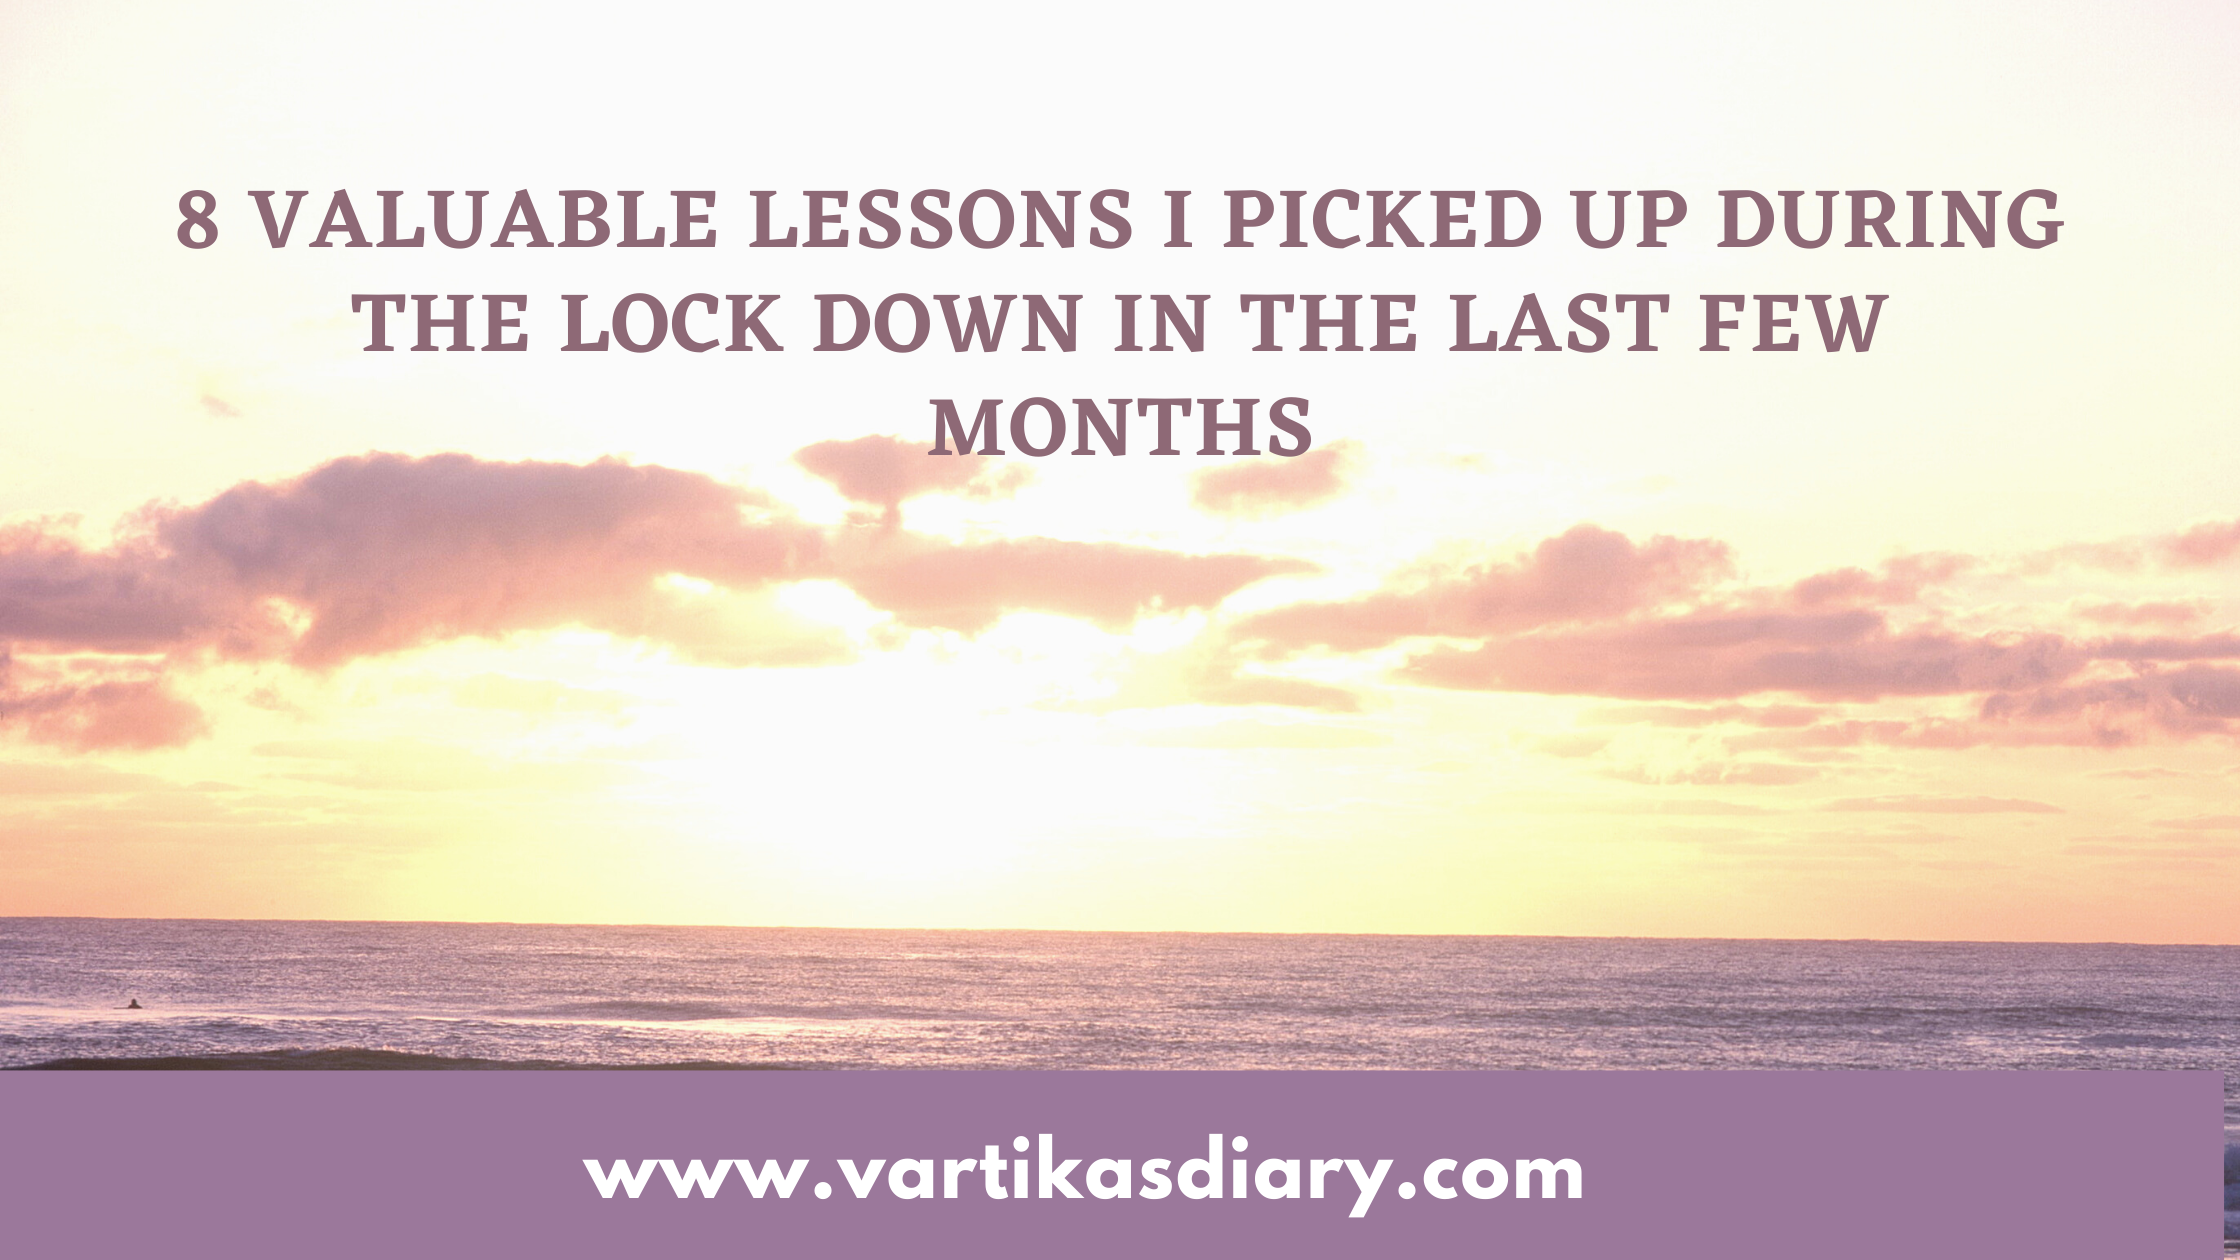 8 Valuable lessons I picked up during the lock down in the last few months